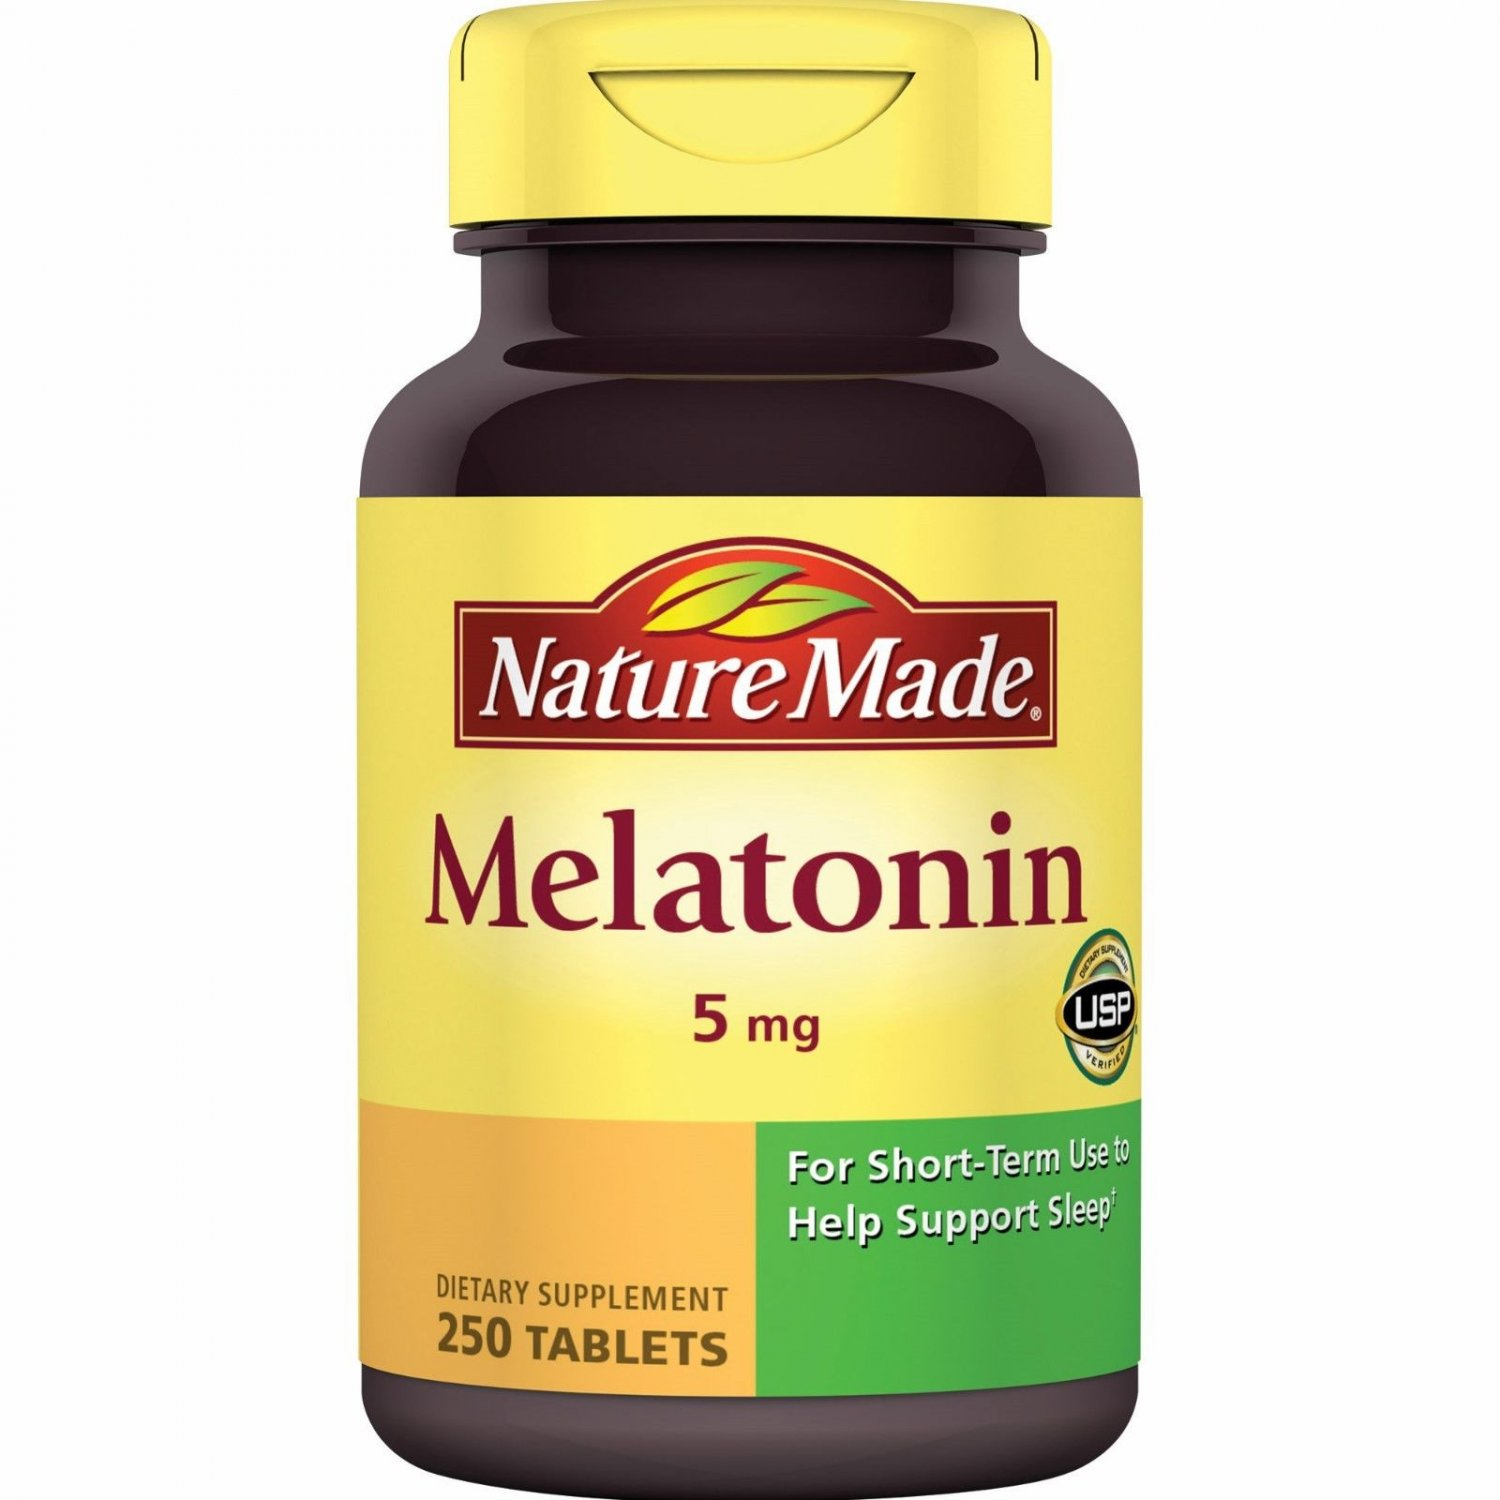 NEW Nature Made Melatonin 5 mg Tablets 250 count